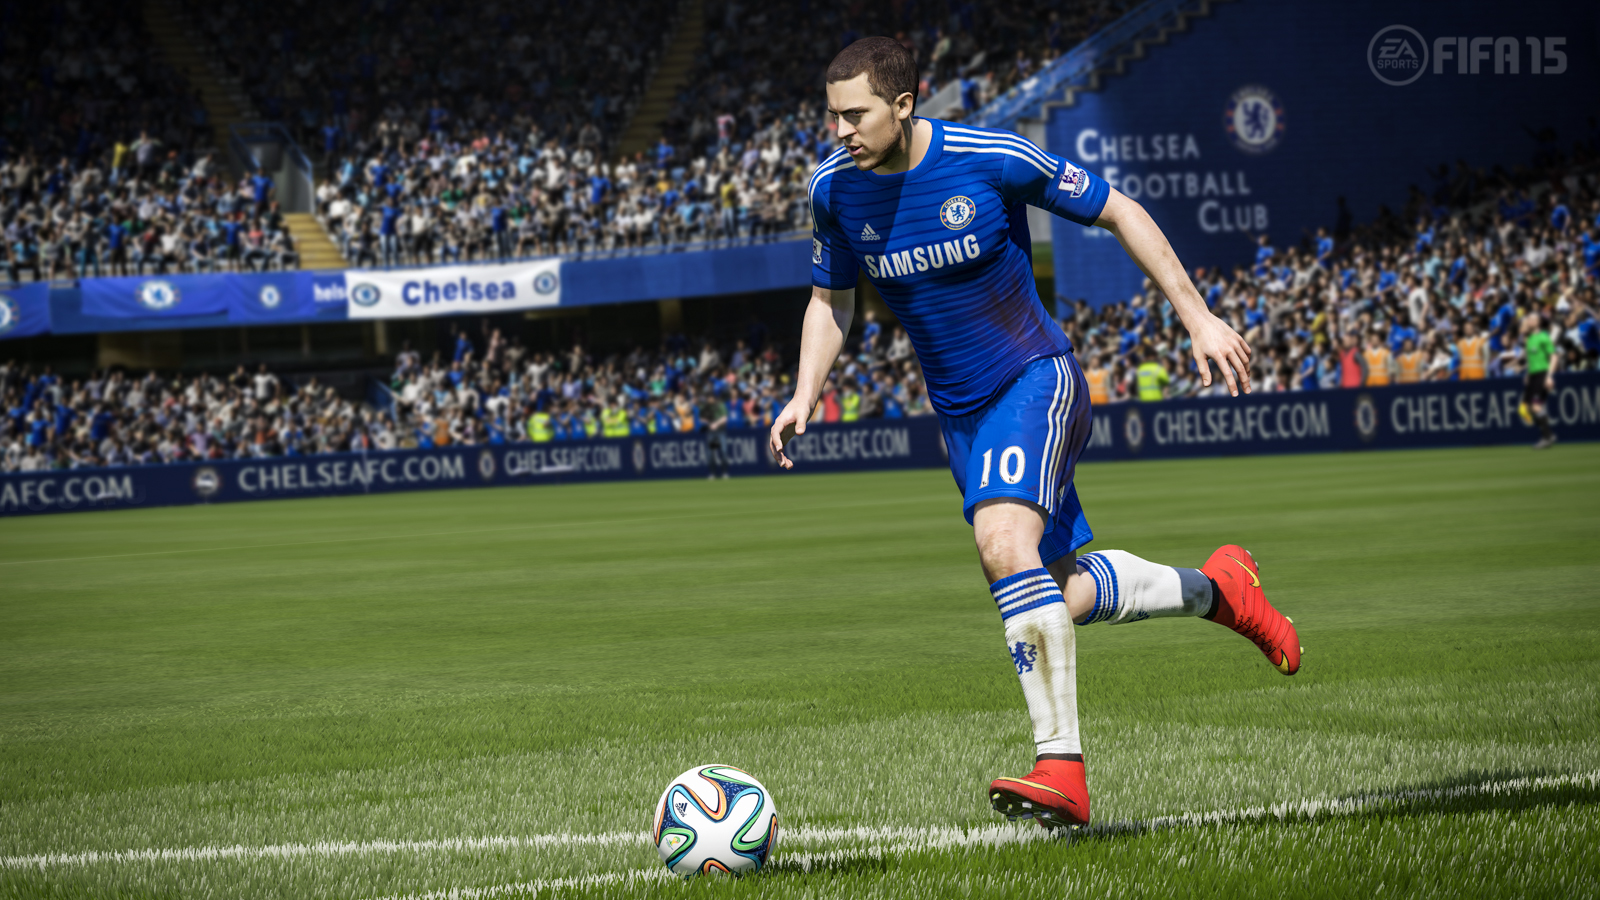 2665661-fifa15_xboxone_ps4_authenticplayervisual_hazard_wm